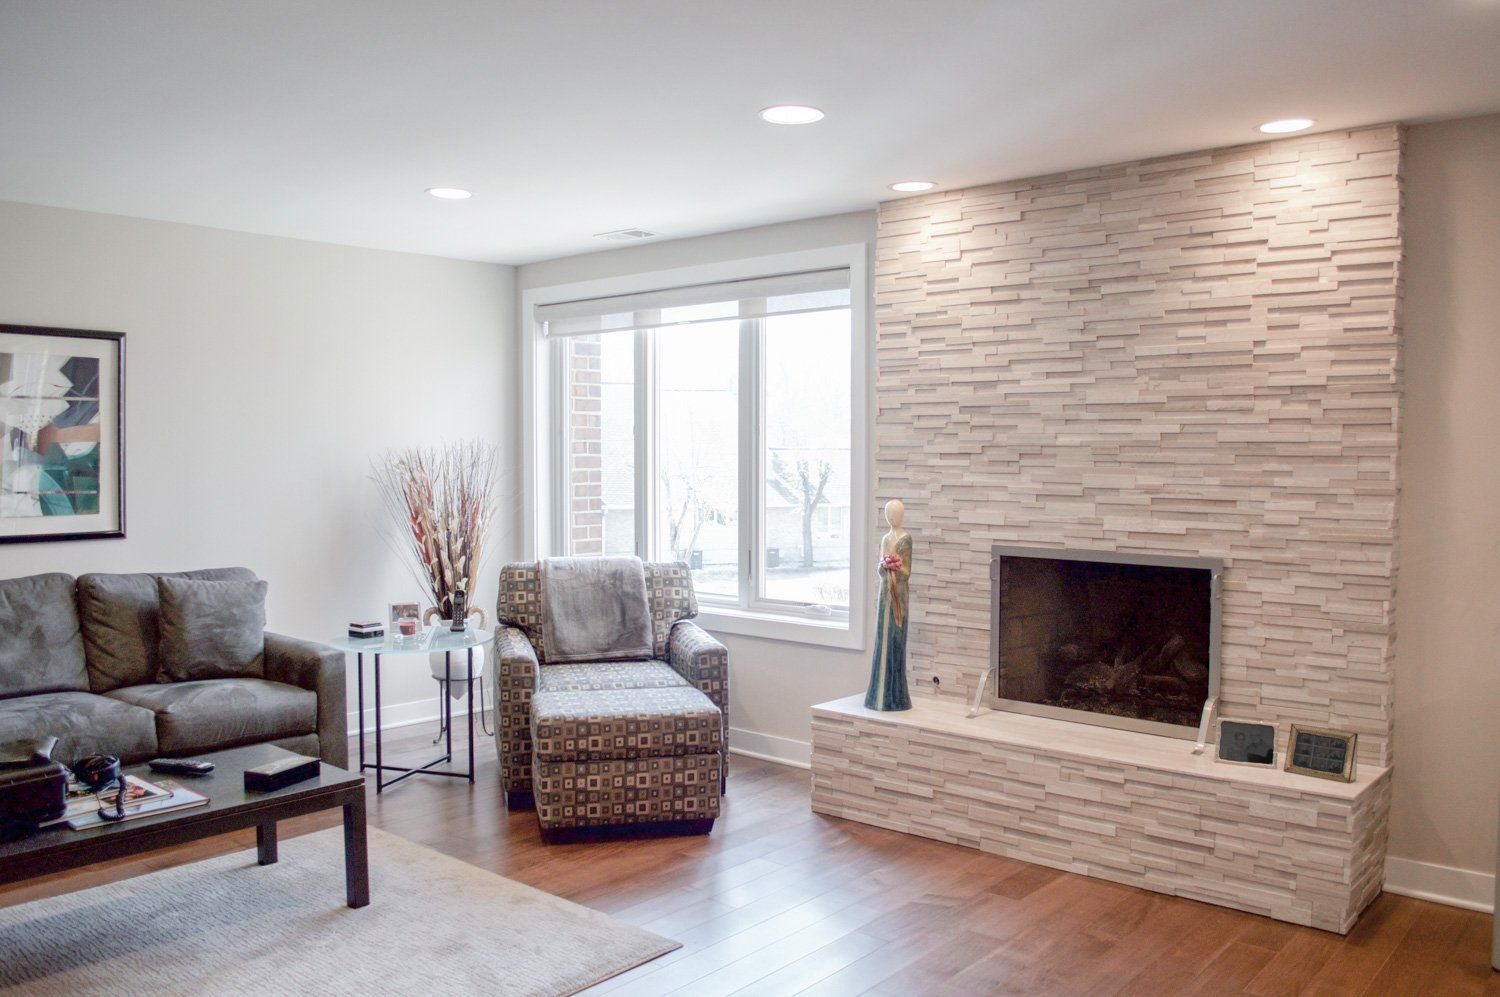 Read More About How Ohi Transformaed This Dated Condo Into A Contemporary Haven With Kemper Cabinets And Granite Countertops Condo Kitchen Remodel Cost Kitchen Cost